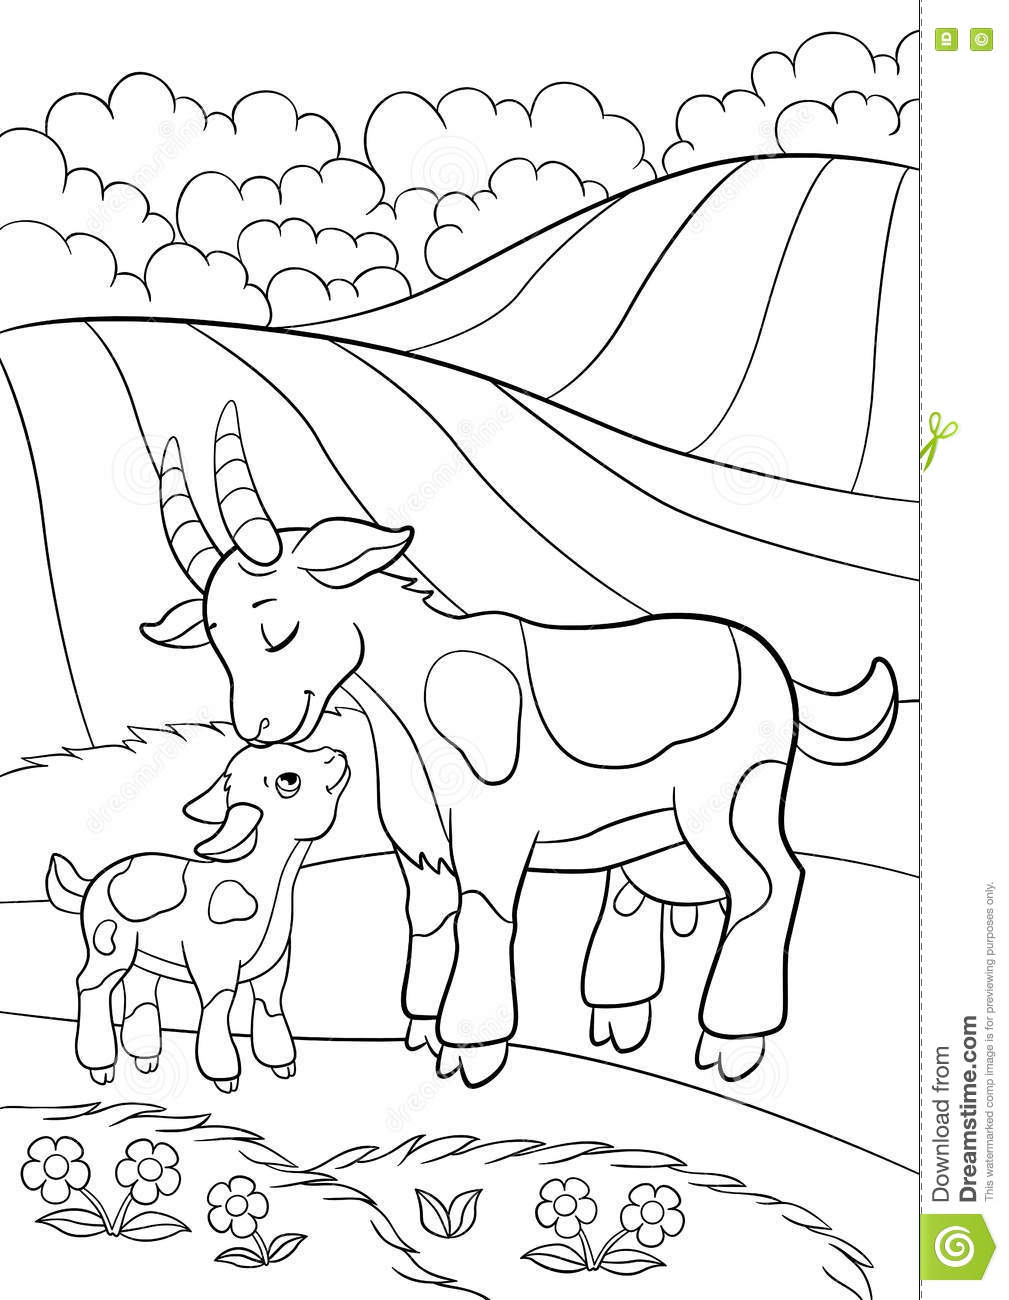 goat to color free printable goat coloring pages for kids goat to color